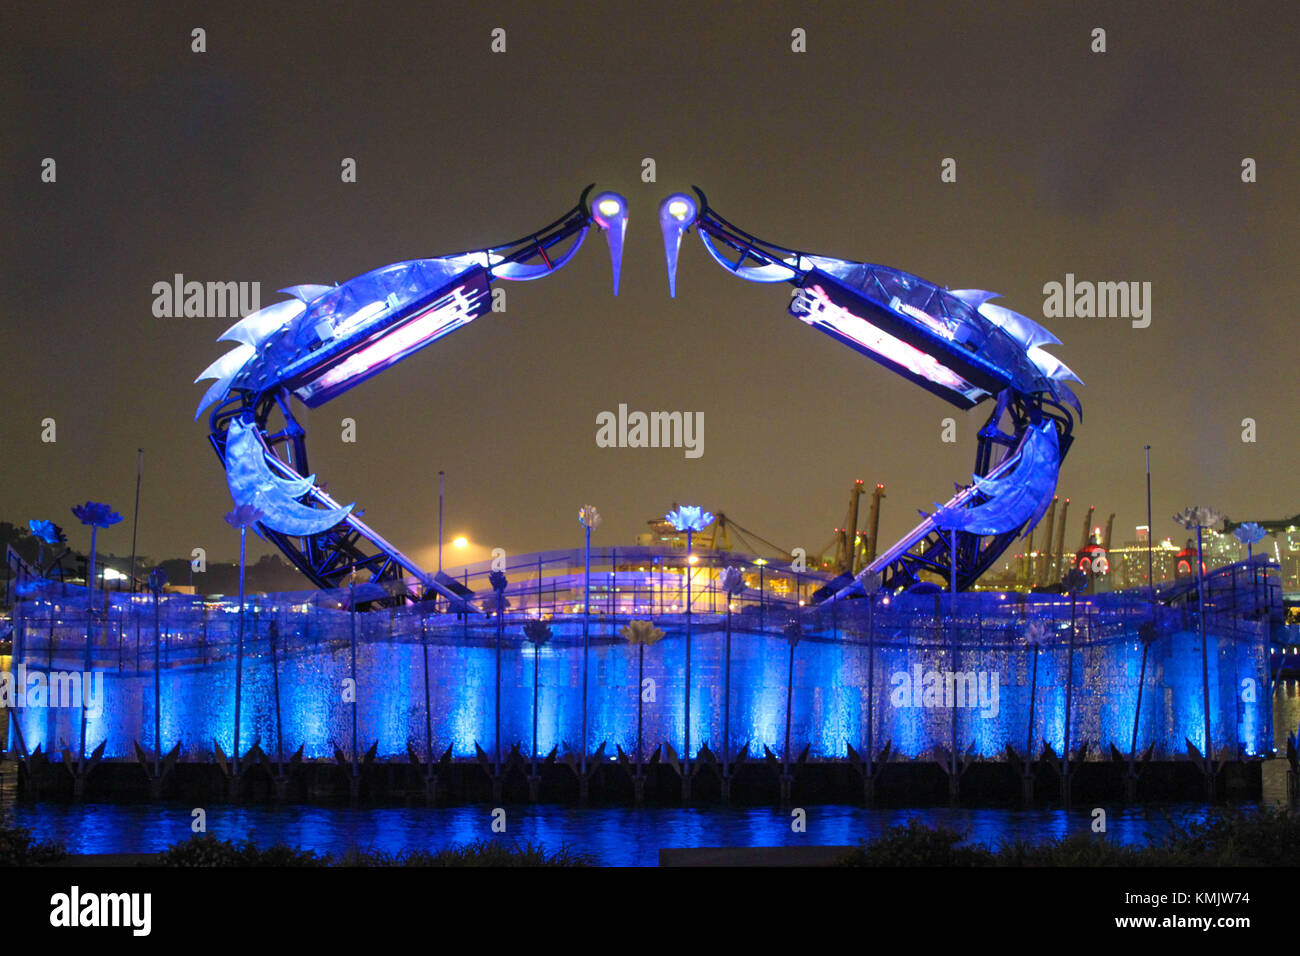 'Crane Dance' Lights and Water Show at Sentosa Island, Singapore - Stock Image